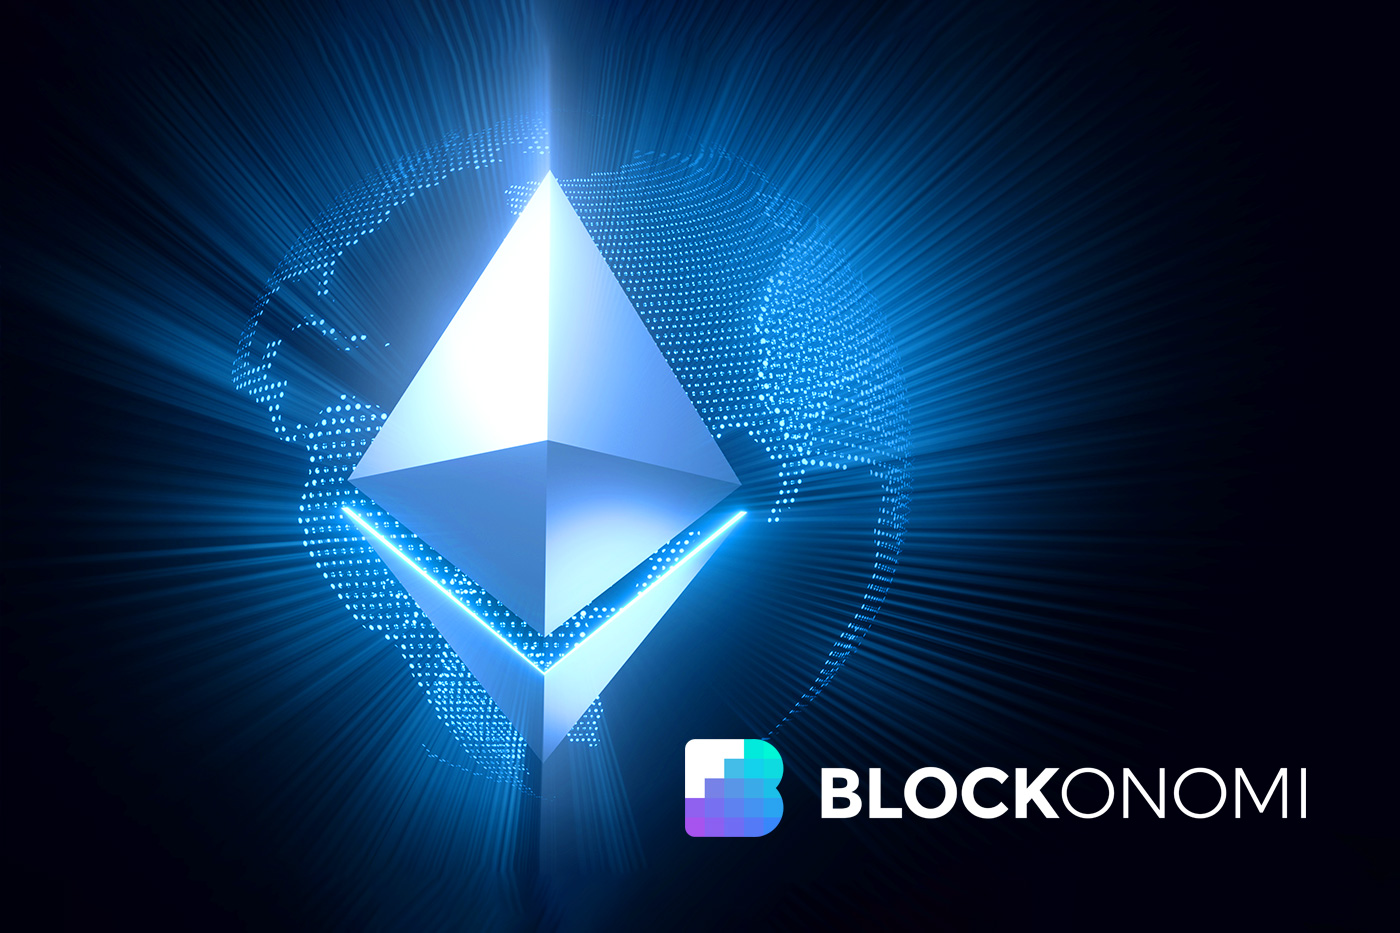 How Ethereum Is Changing the World & Pointing to a Brighter Future